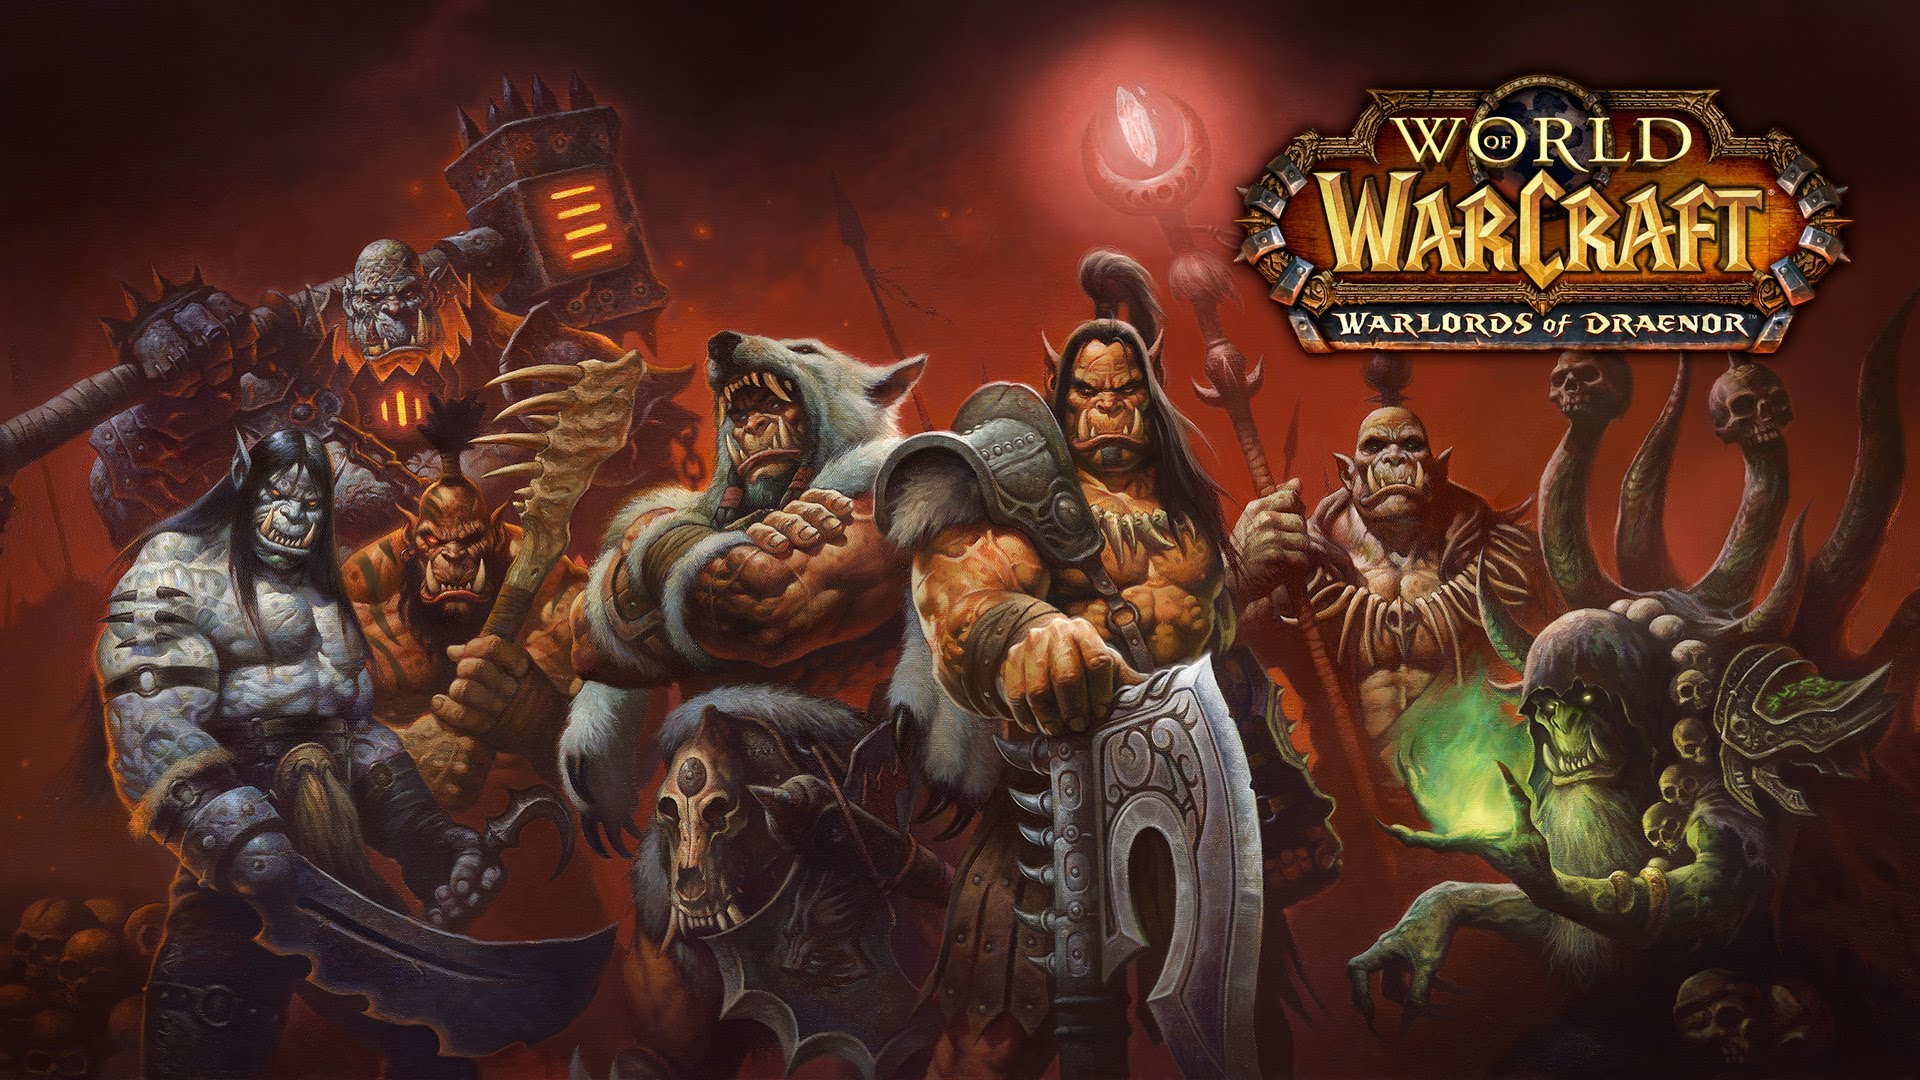 World Of Warcraft Warlords of Draenor 1113.93 Kb